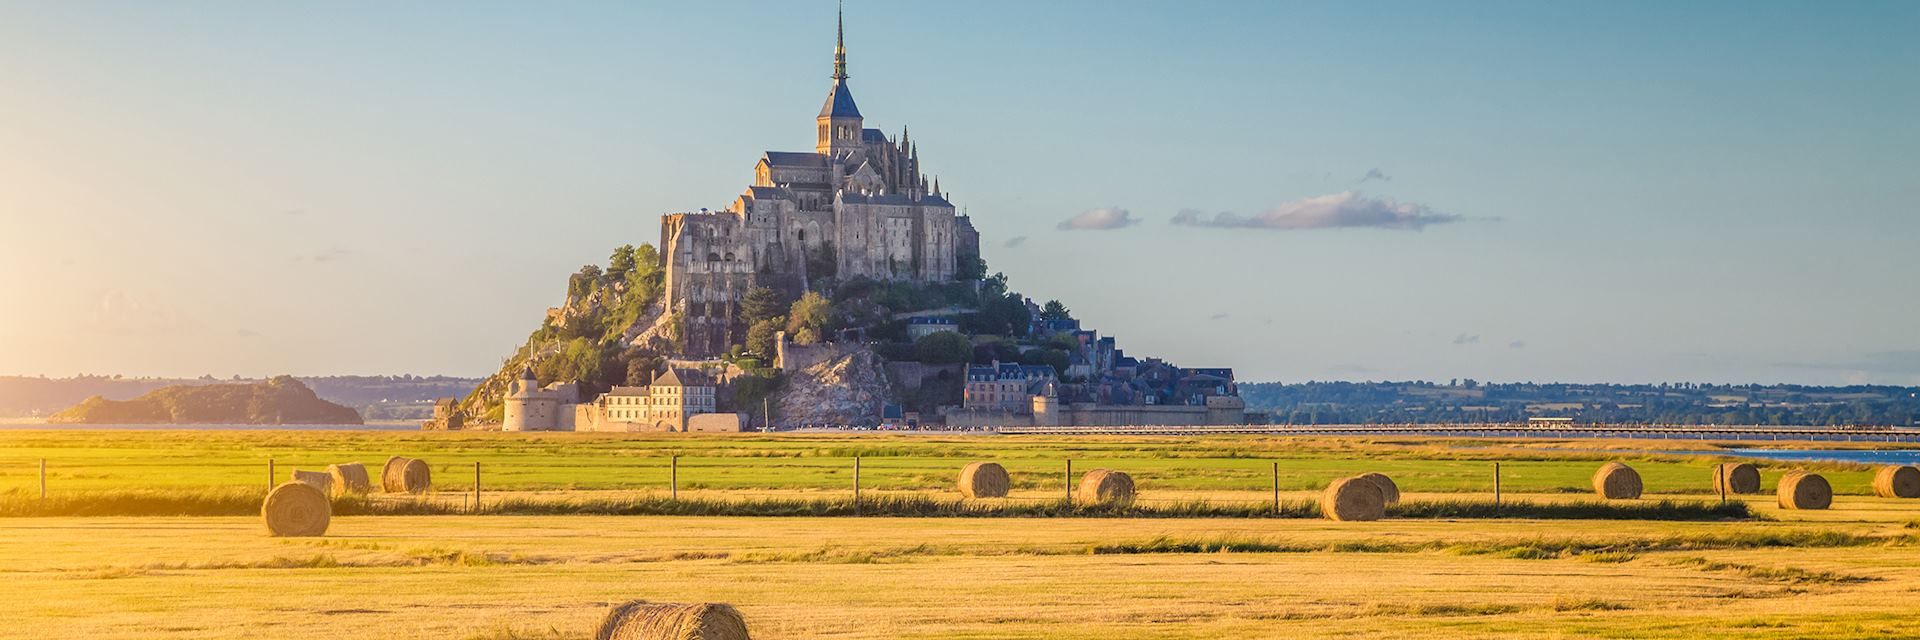 Le Mont Saint-Michel at sunset, Normandy